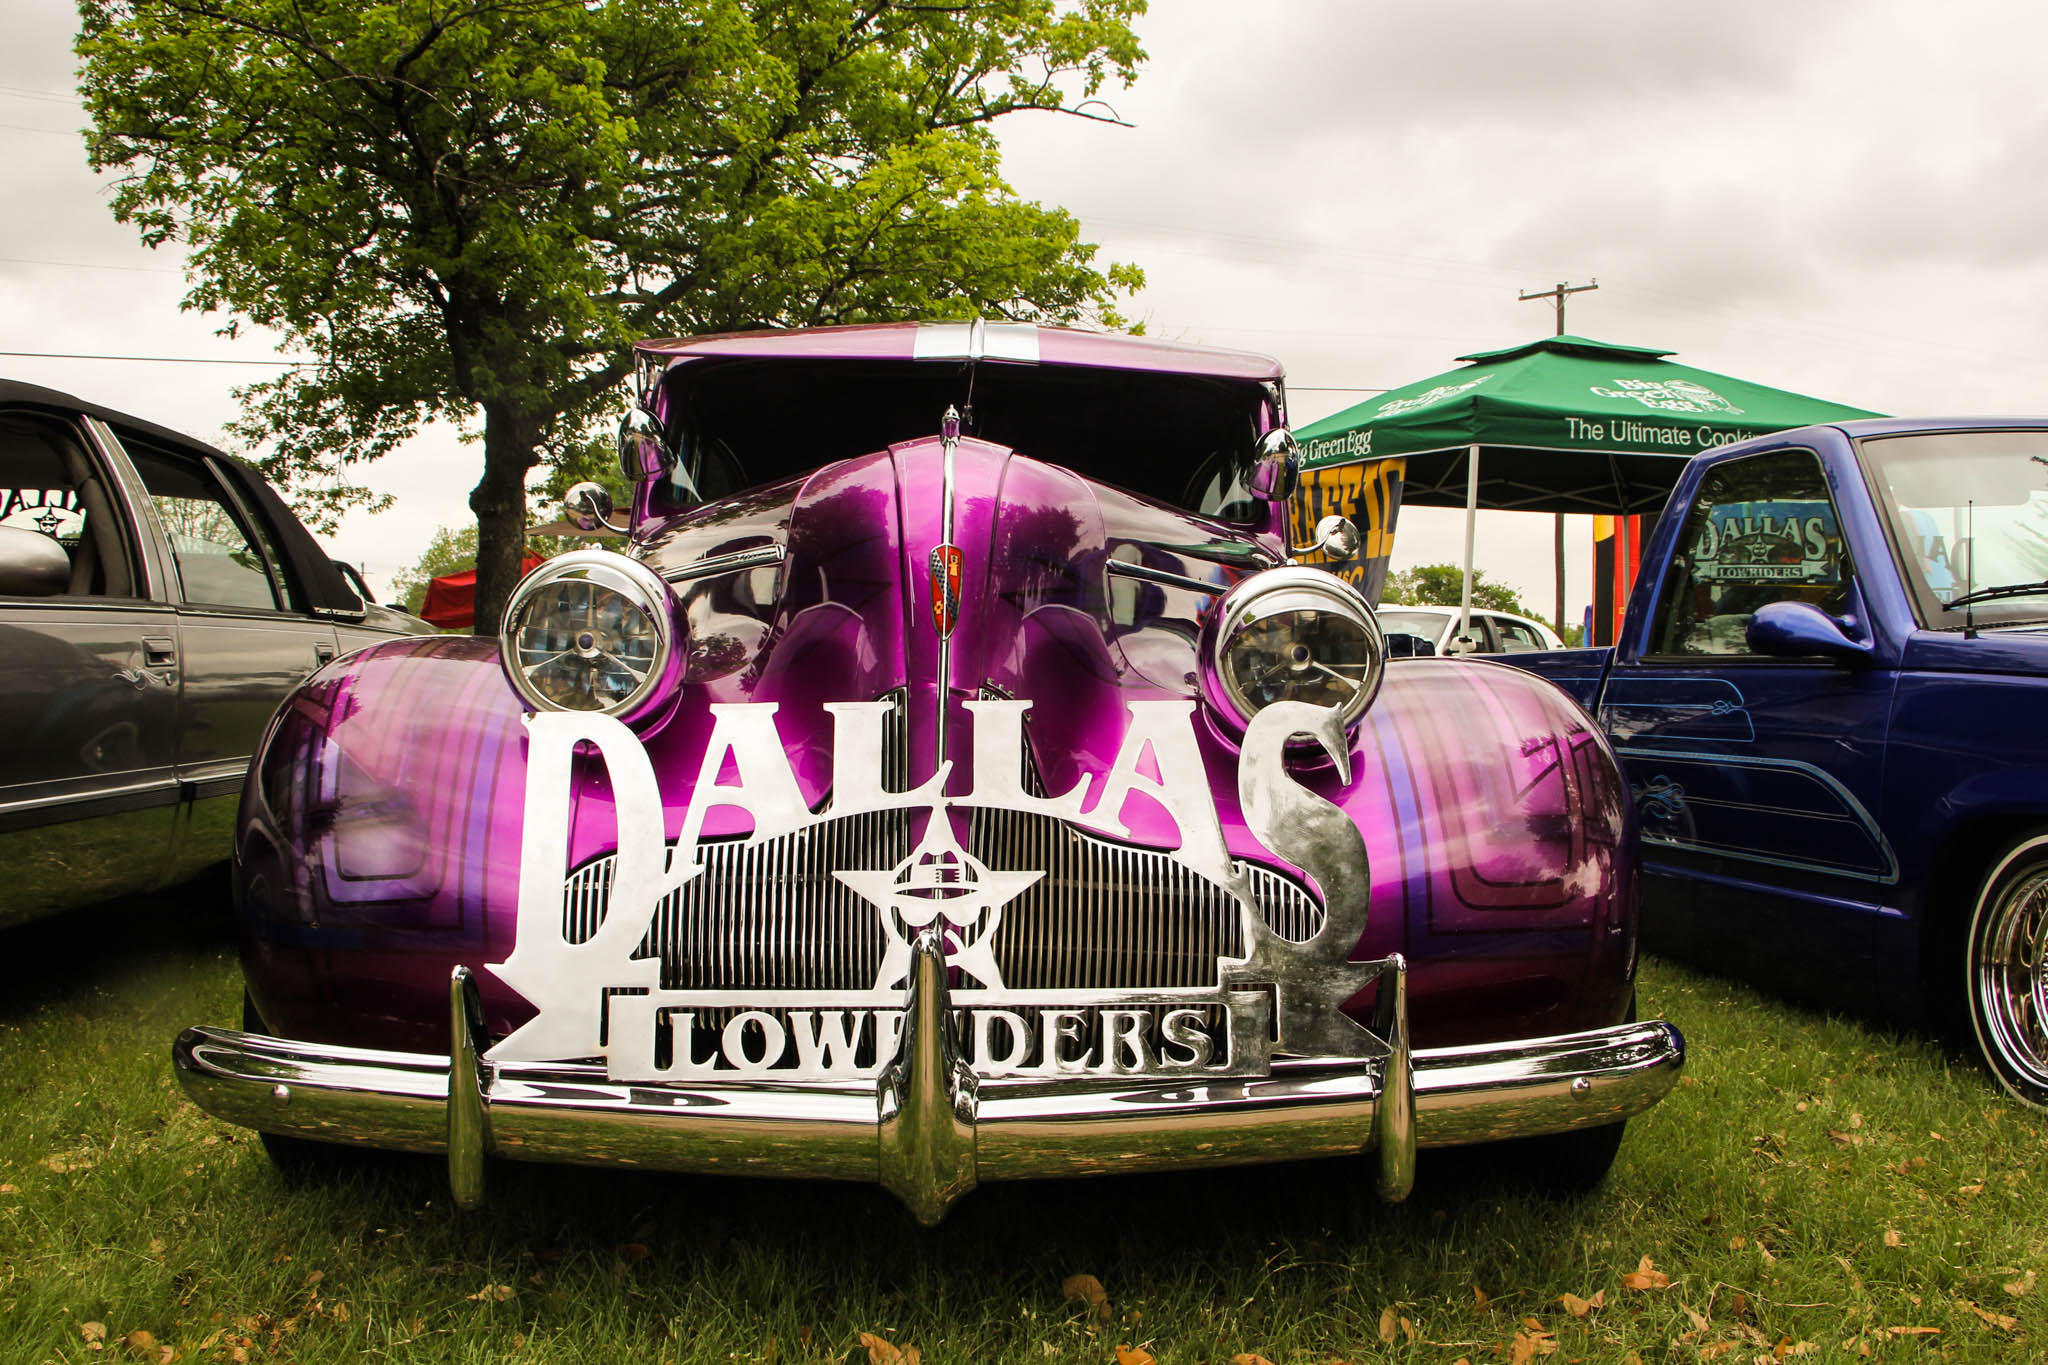 Lowriders Combat Cultural Stereotypes With Family And Flashy - Lowrider car show dallas